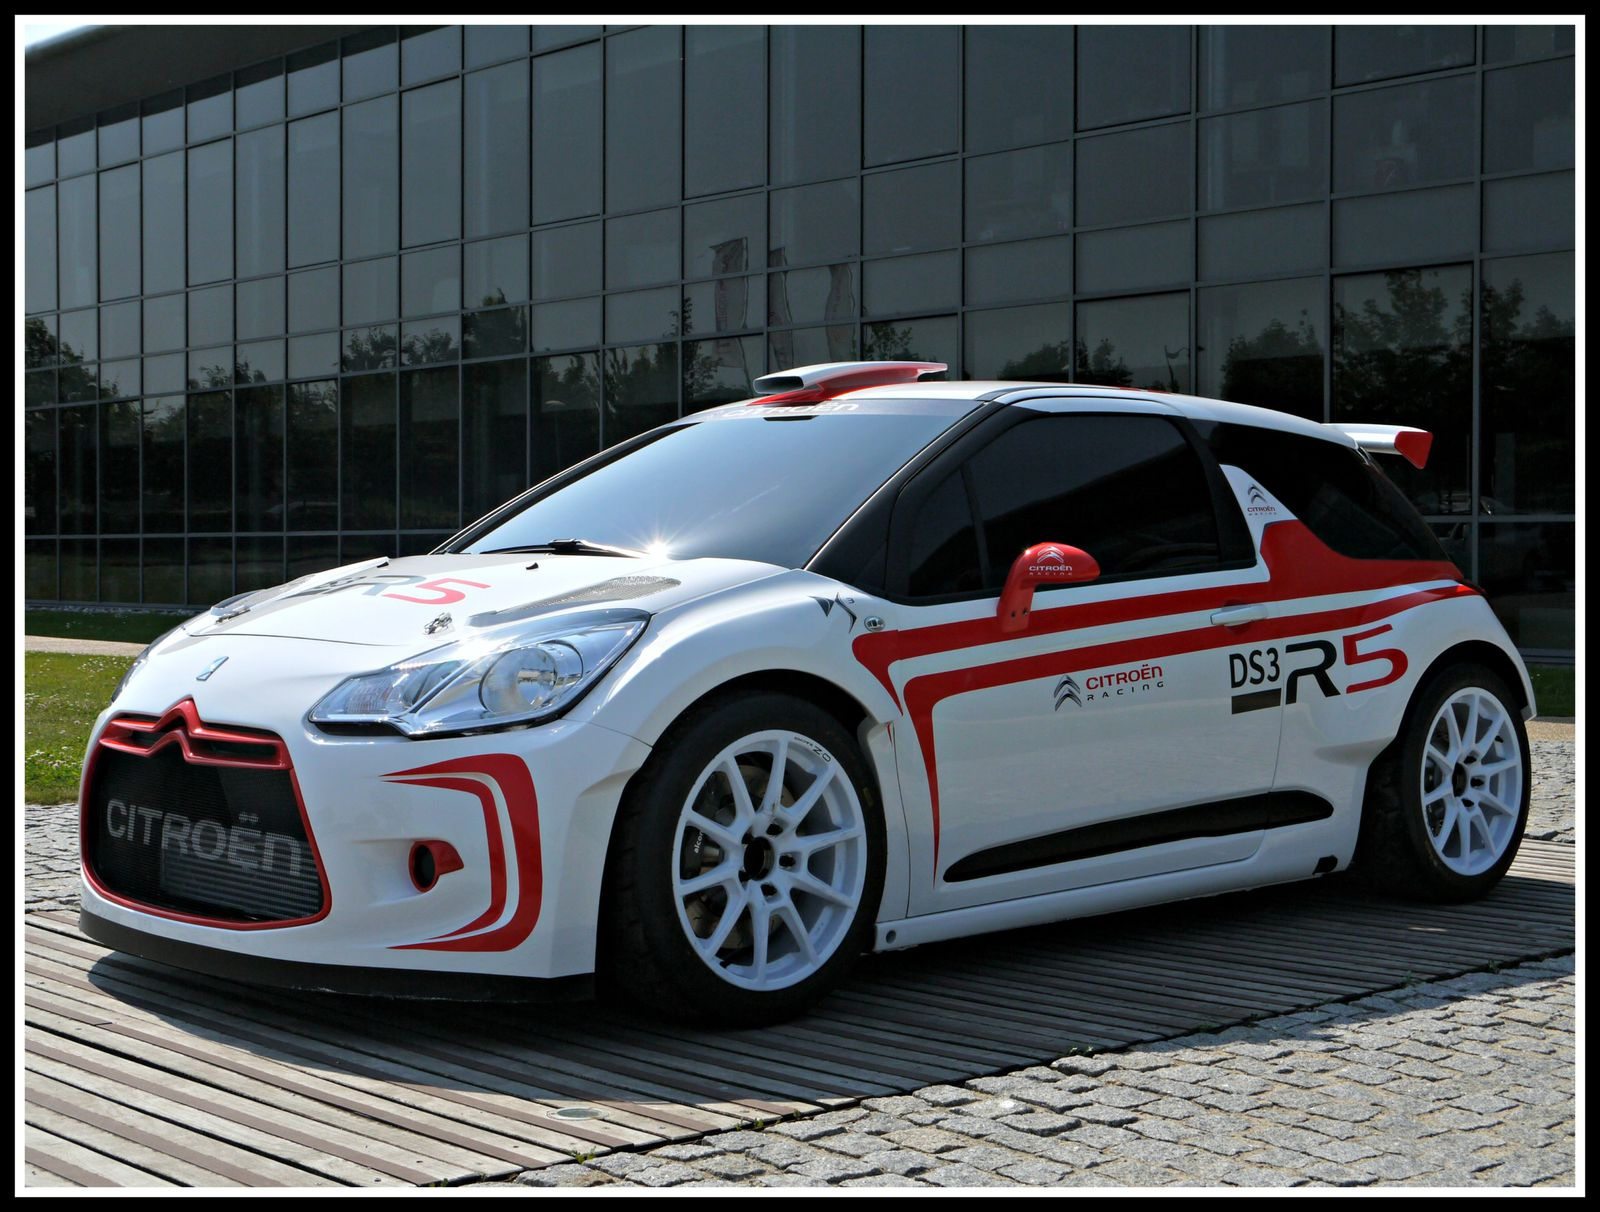 sebastien chardonnet 6 rallyes en wrc2 en 2014 avec la ds3 r5. Black Bedroom Furniture Sets. Home Design Ideas